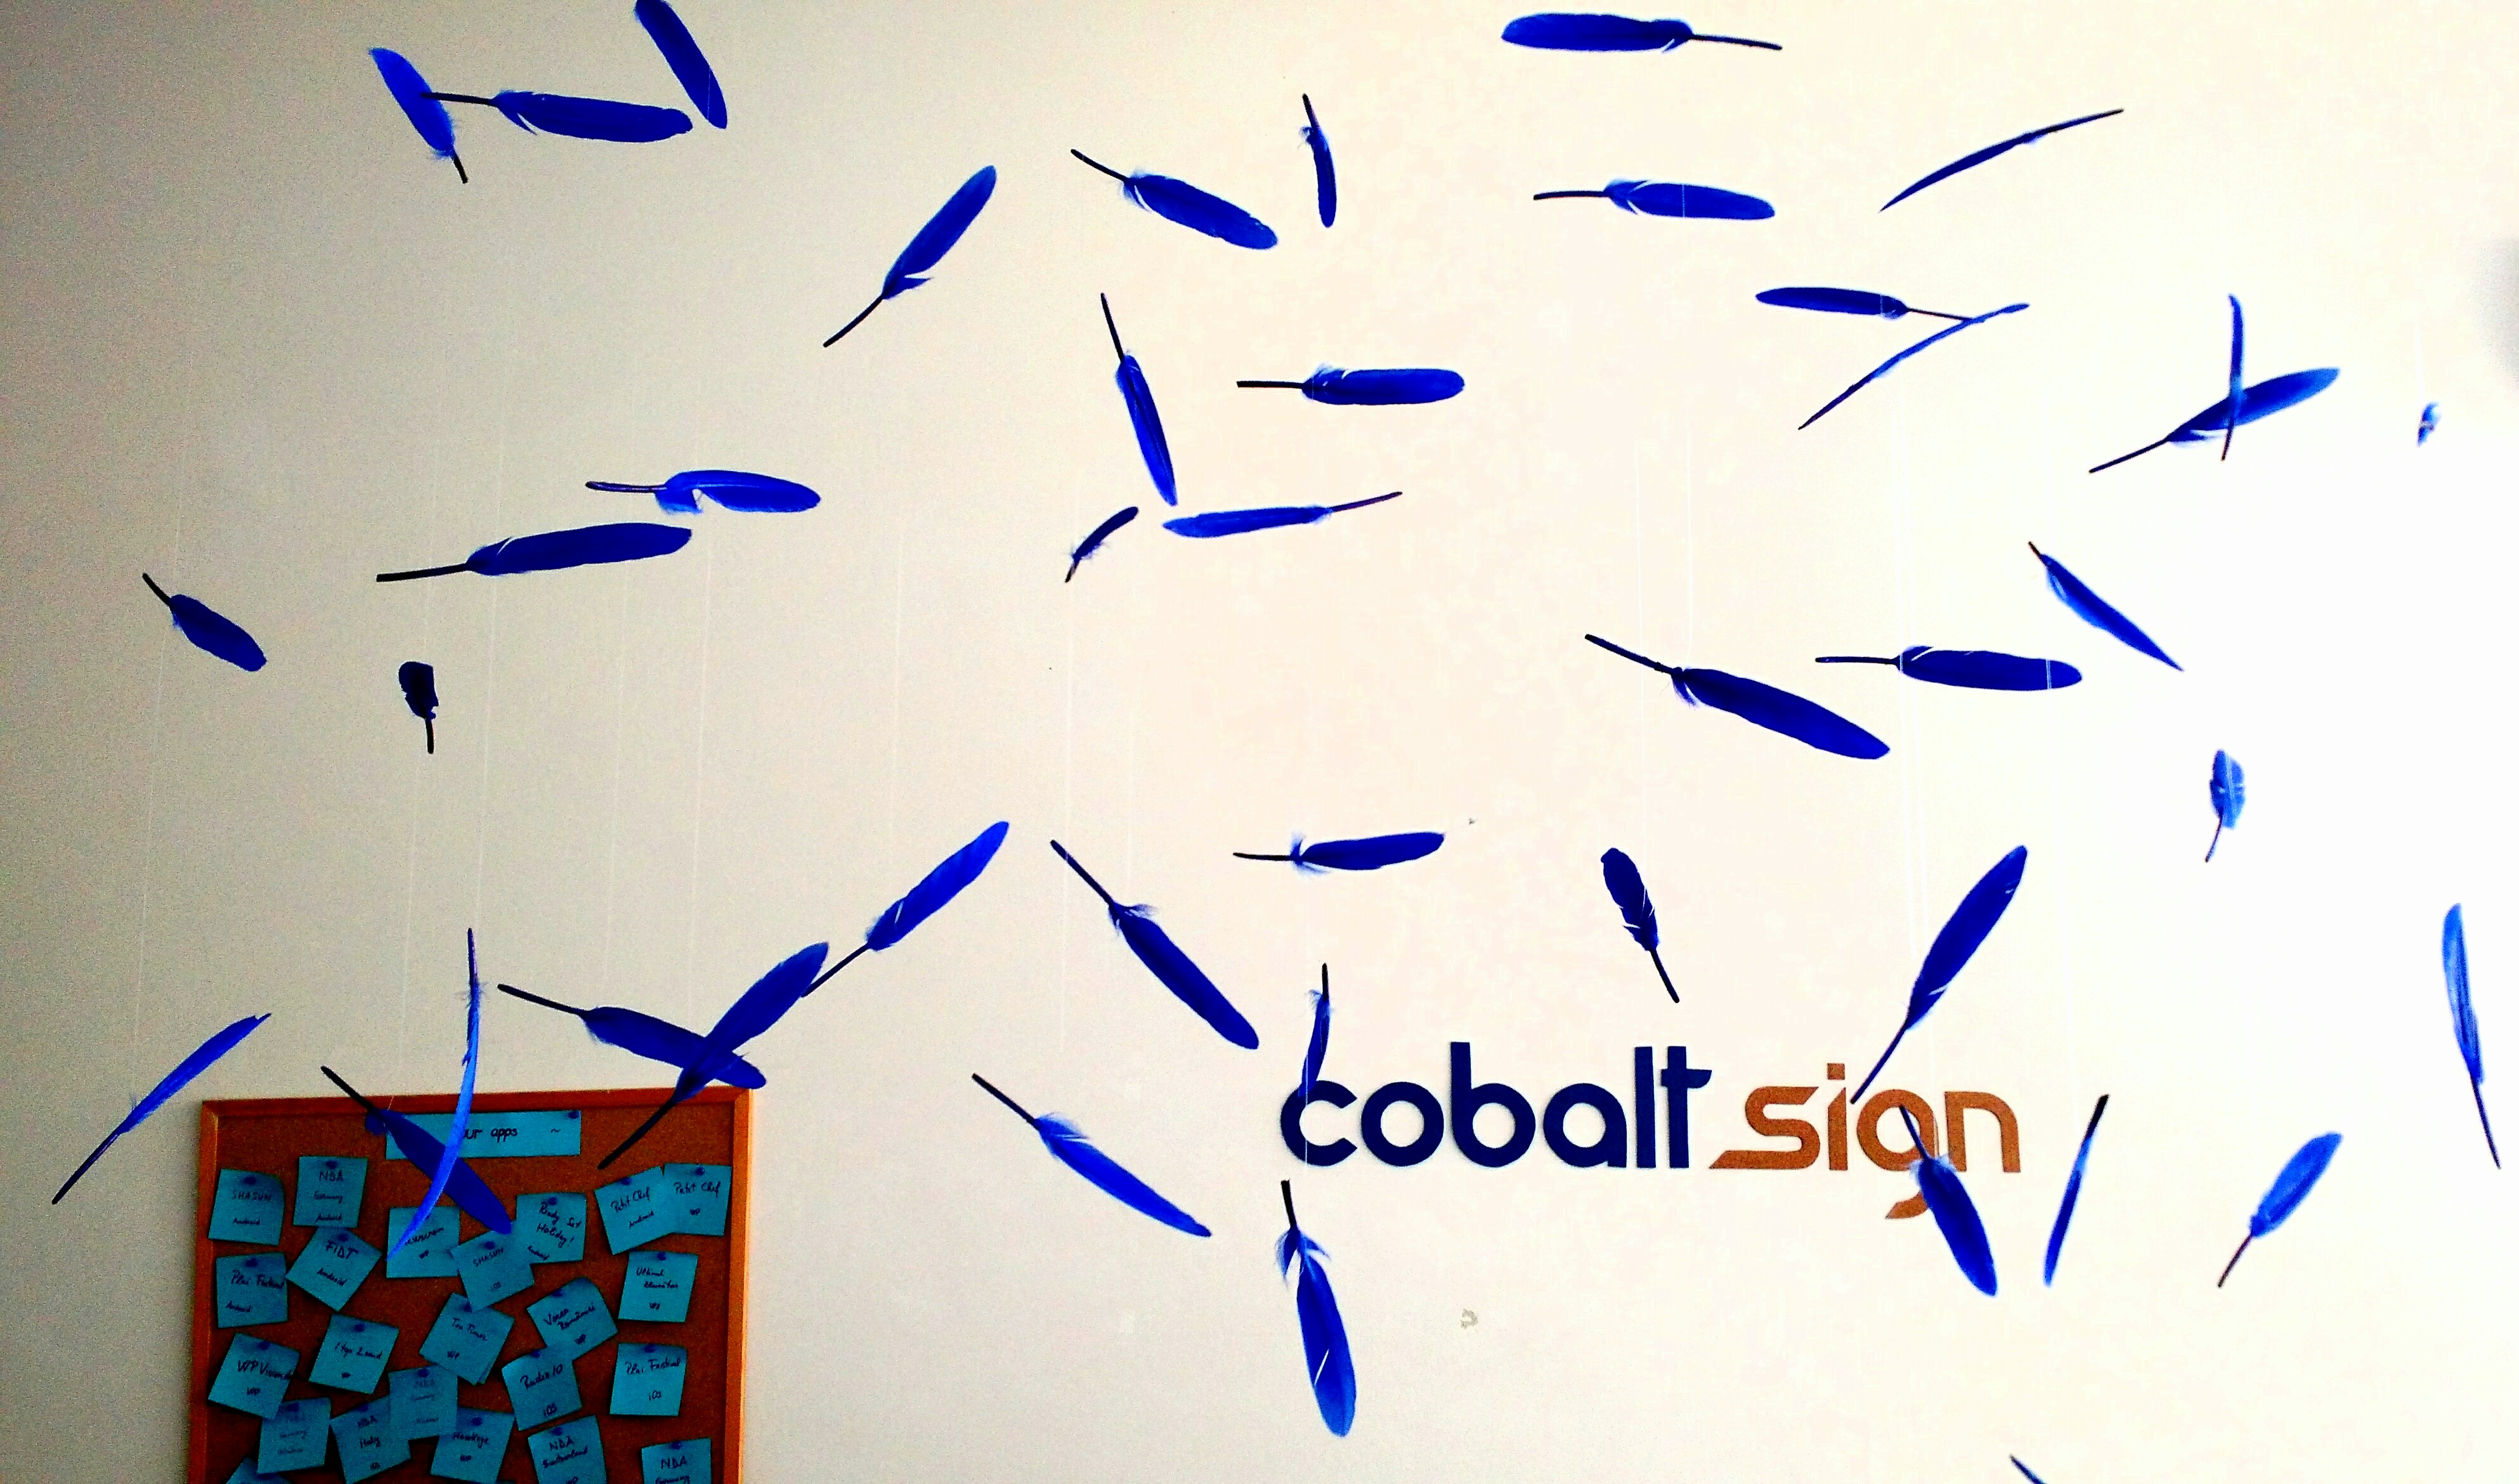 Cobalt Sign decorations 2